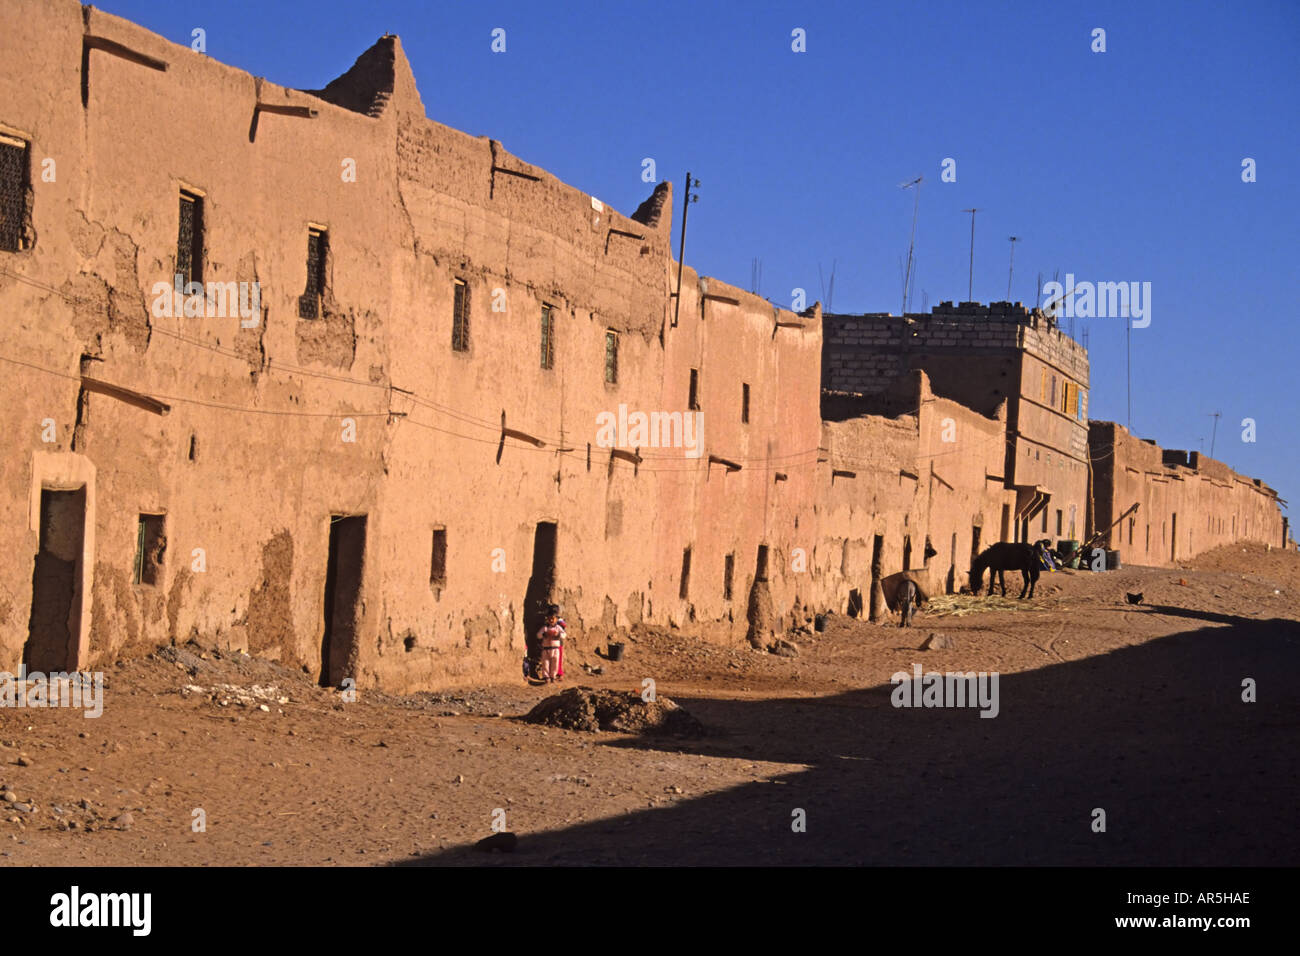 Adobe Buildings in Morocco Stock Photo Royalty Free Image